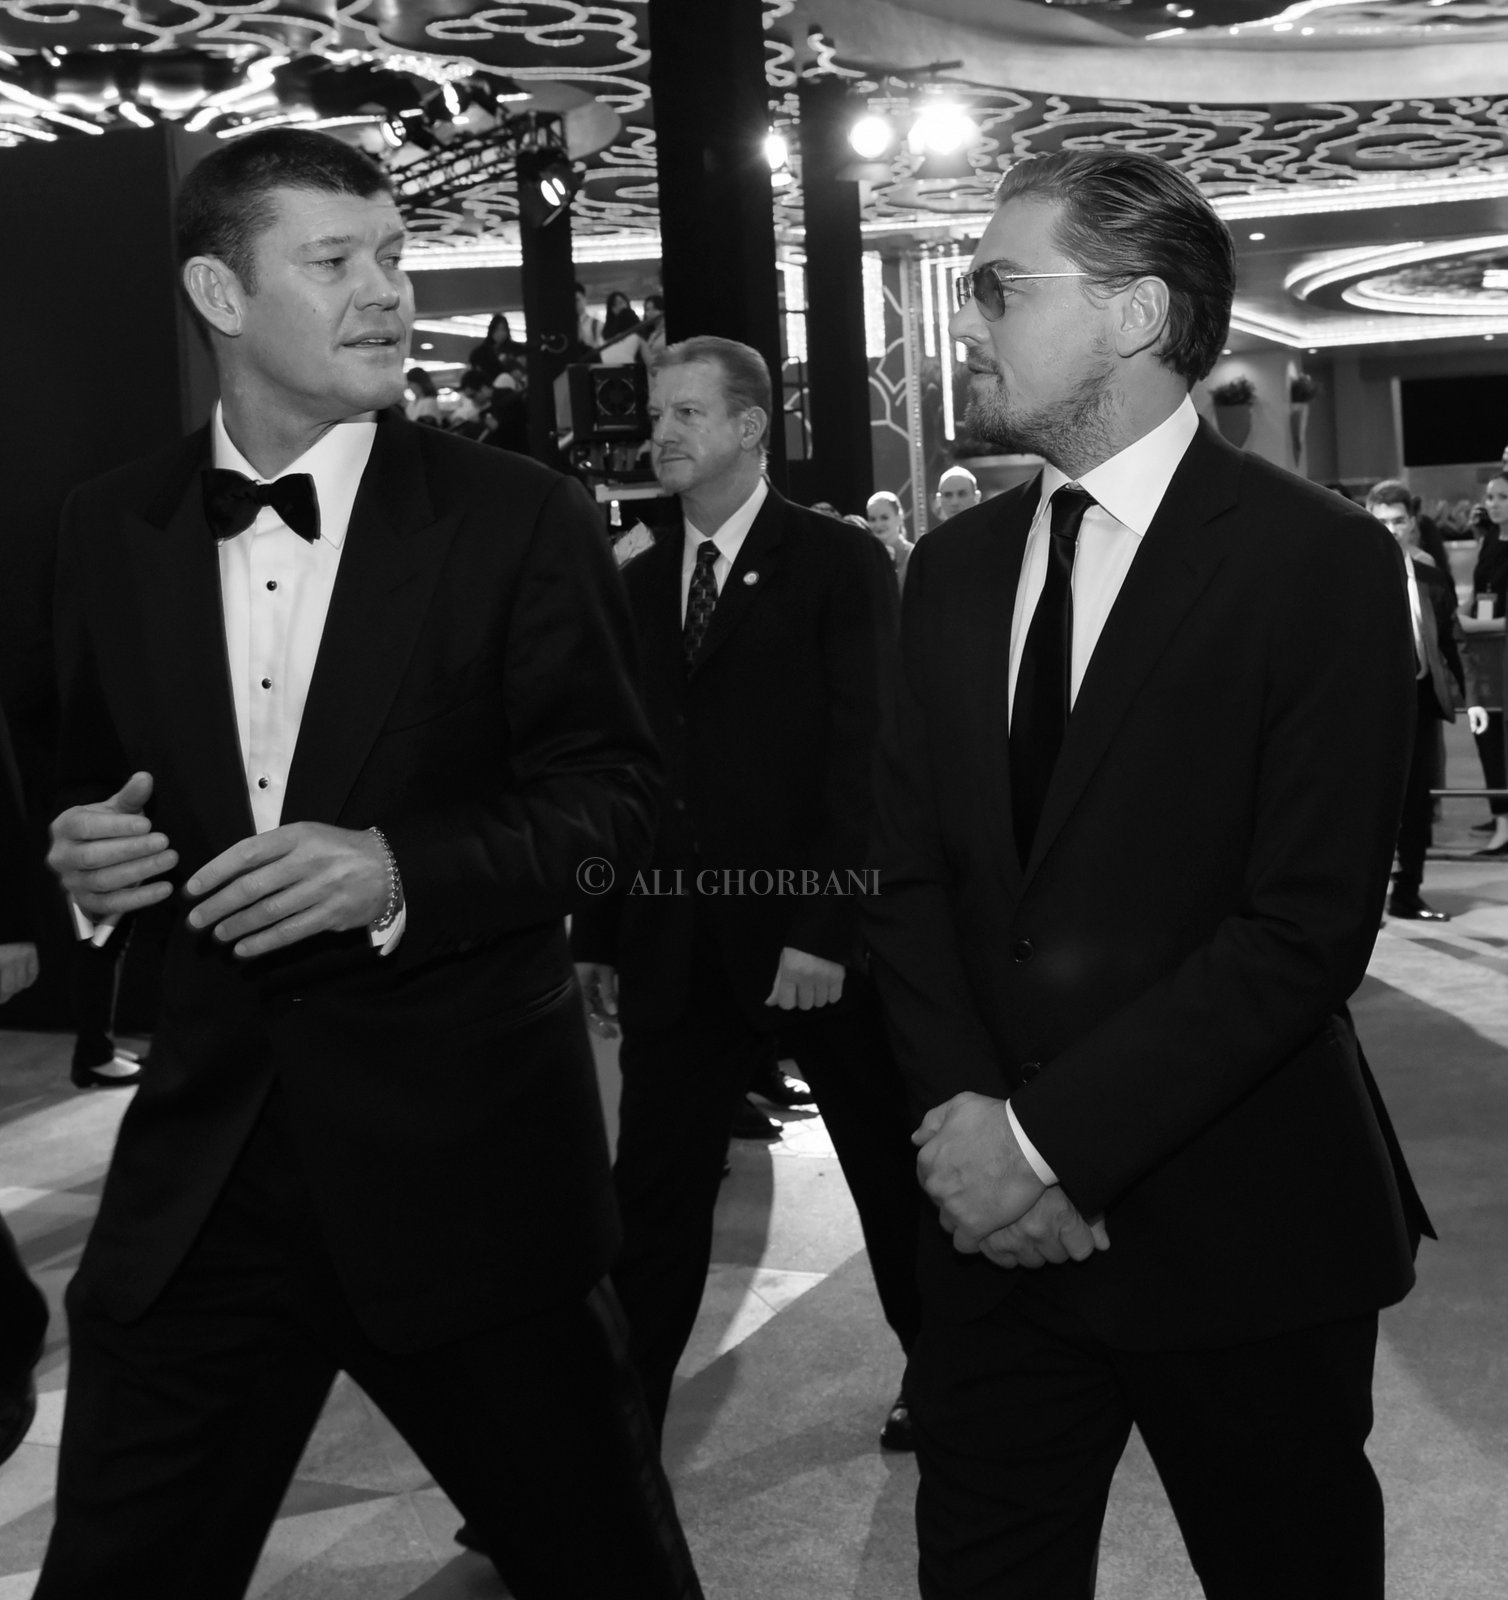 Events Photographer Hong Kong - Leonardo DiCaprio & James Packer